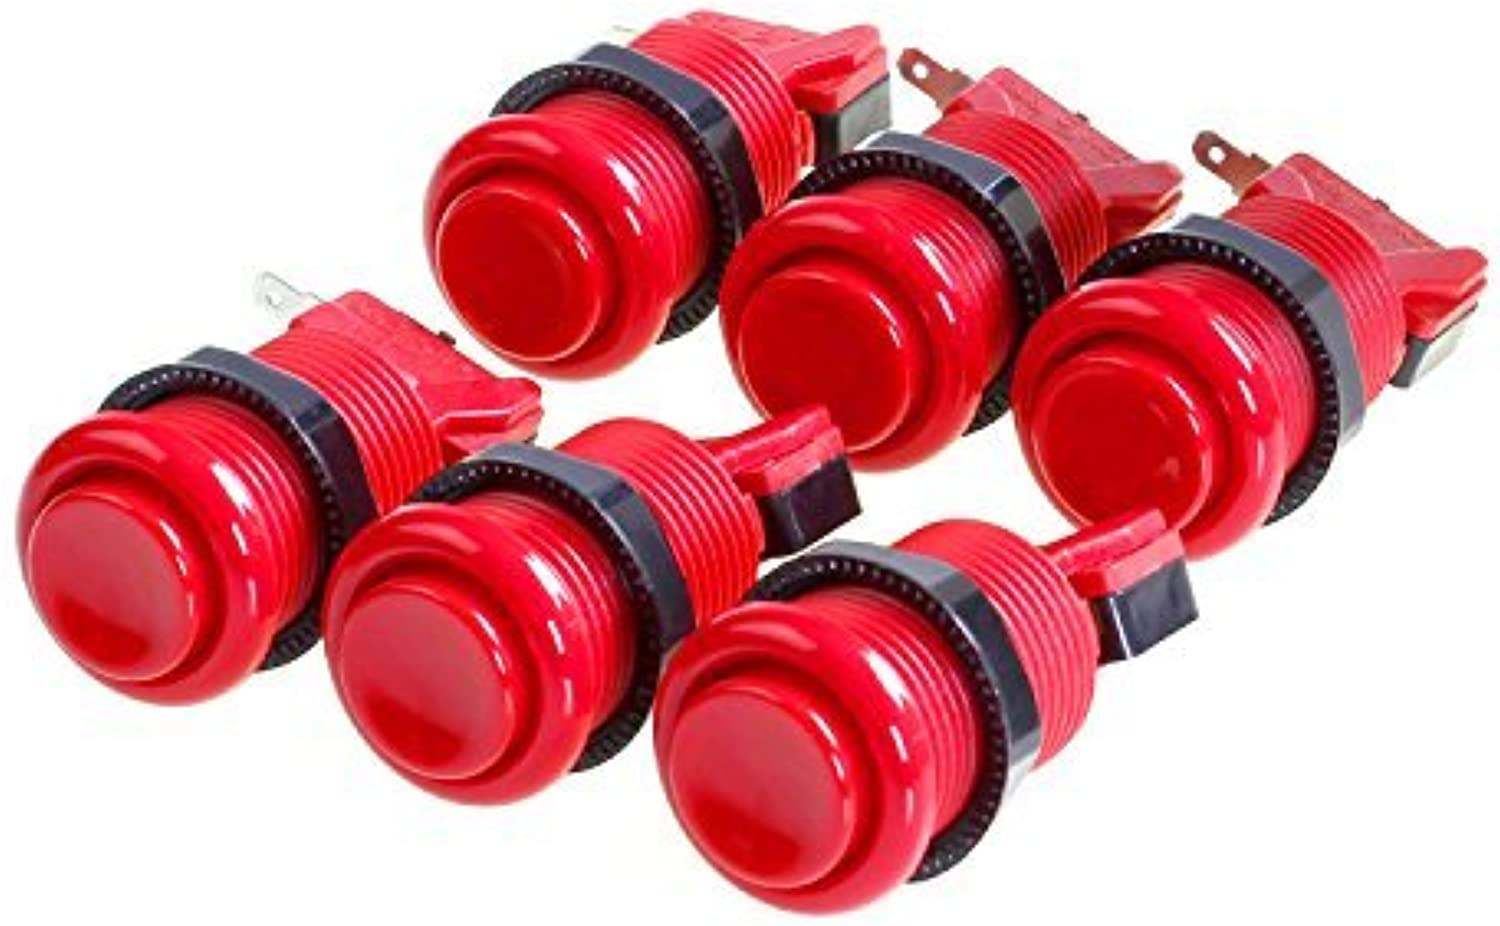 Amatek 6 PCS Happ Arcade Push Button With Microswitches- rot by Amatek